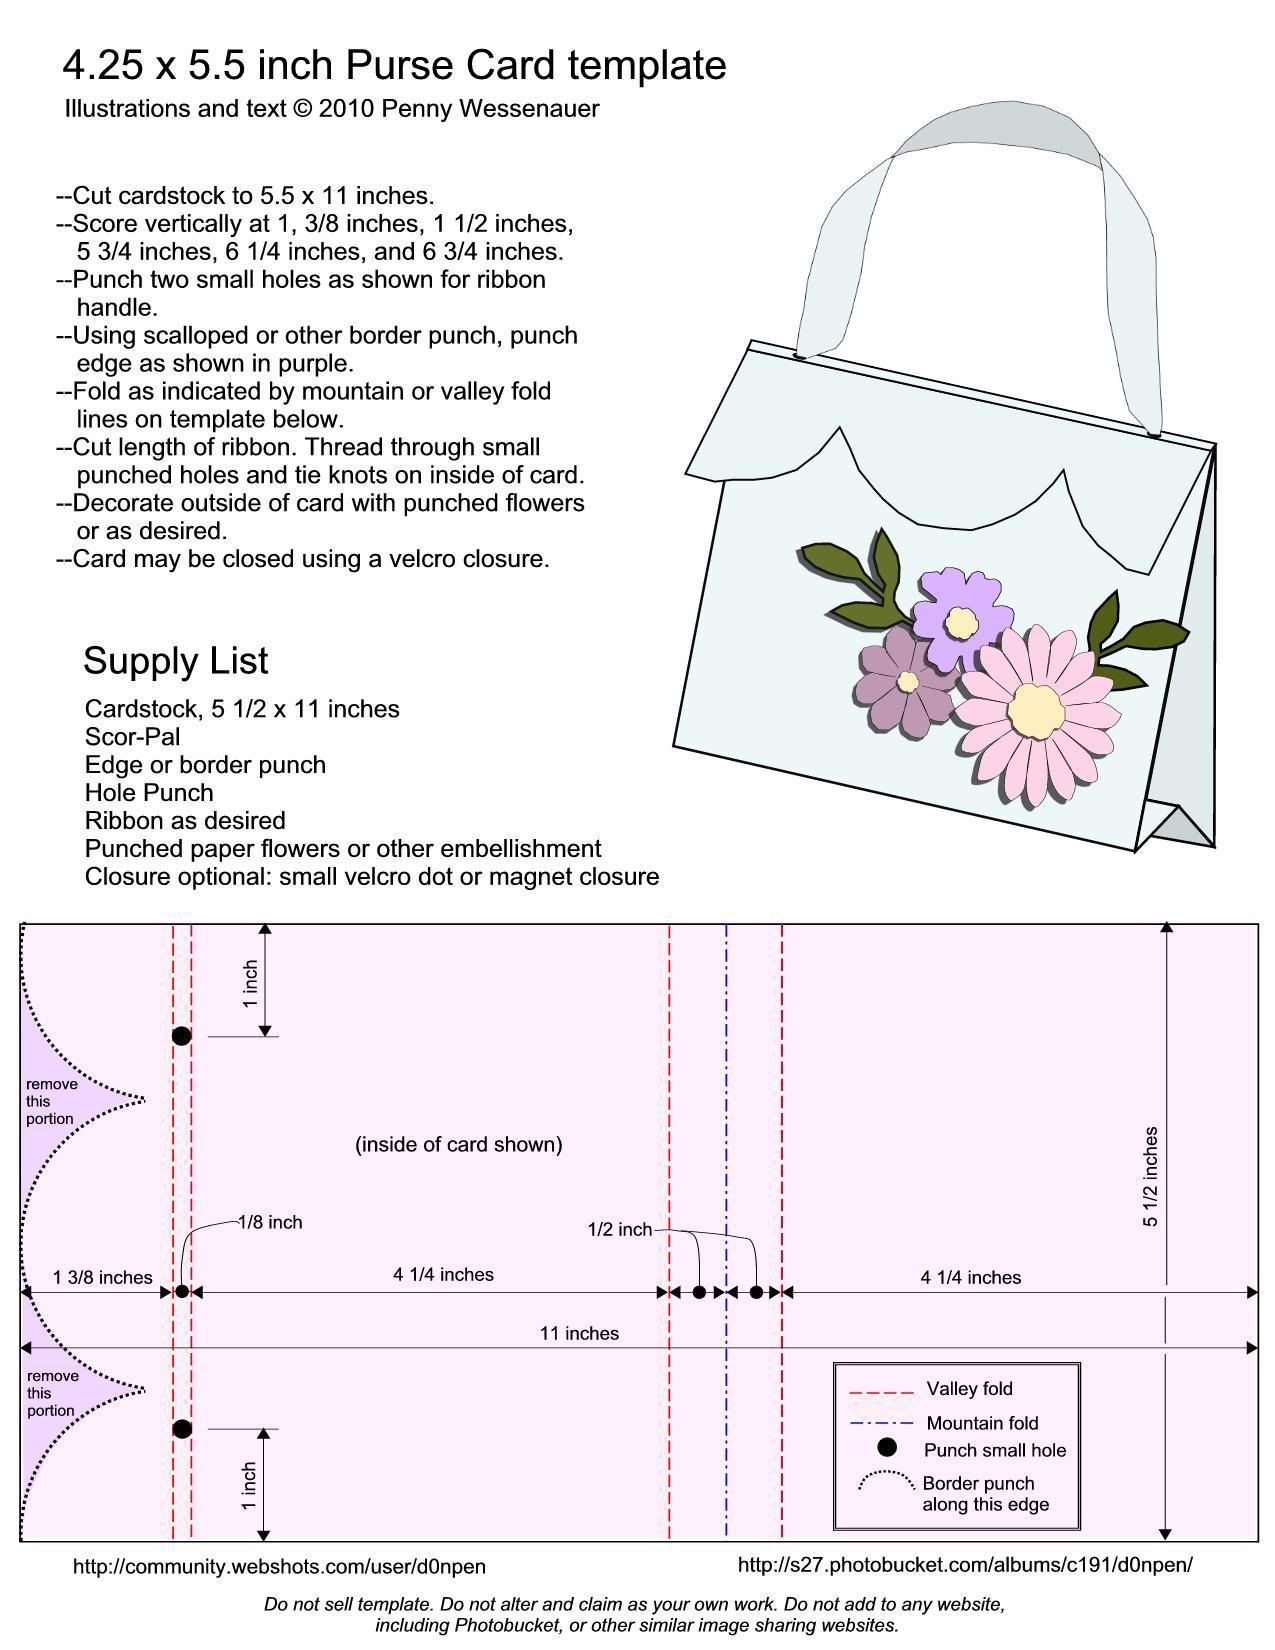 The Interesting Purse Card Template Size A2 4 25 X 5 5 Templates In A2 Card Template Images Below Card Making Templates Handbag Card Step Cards